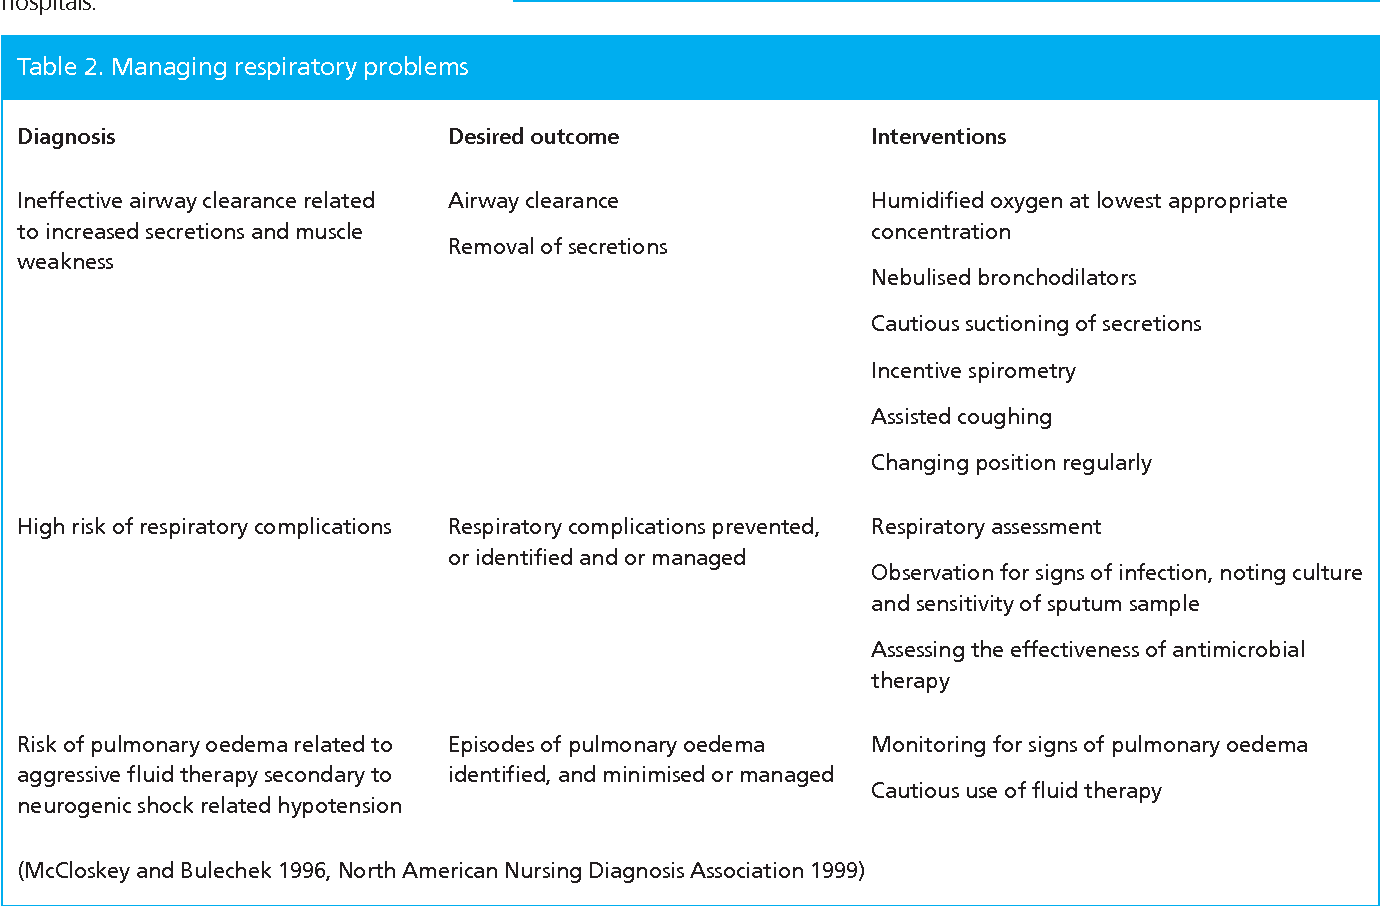 Table 2 From Spinal Cord Injury Acute Care Management